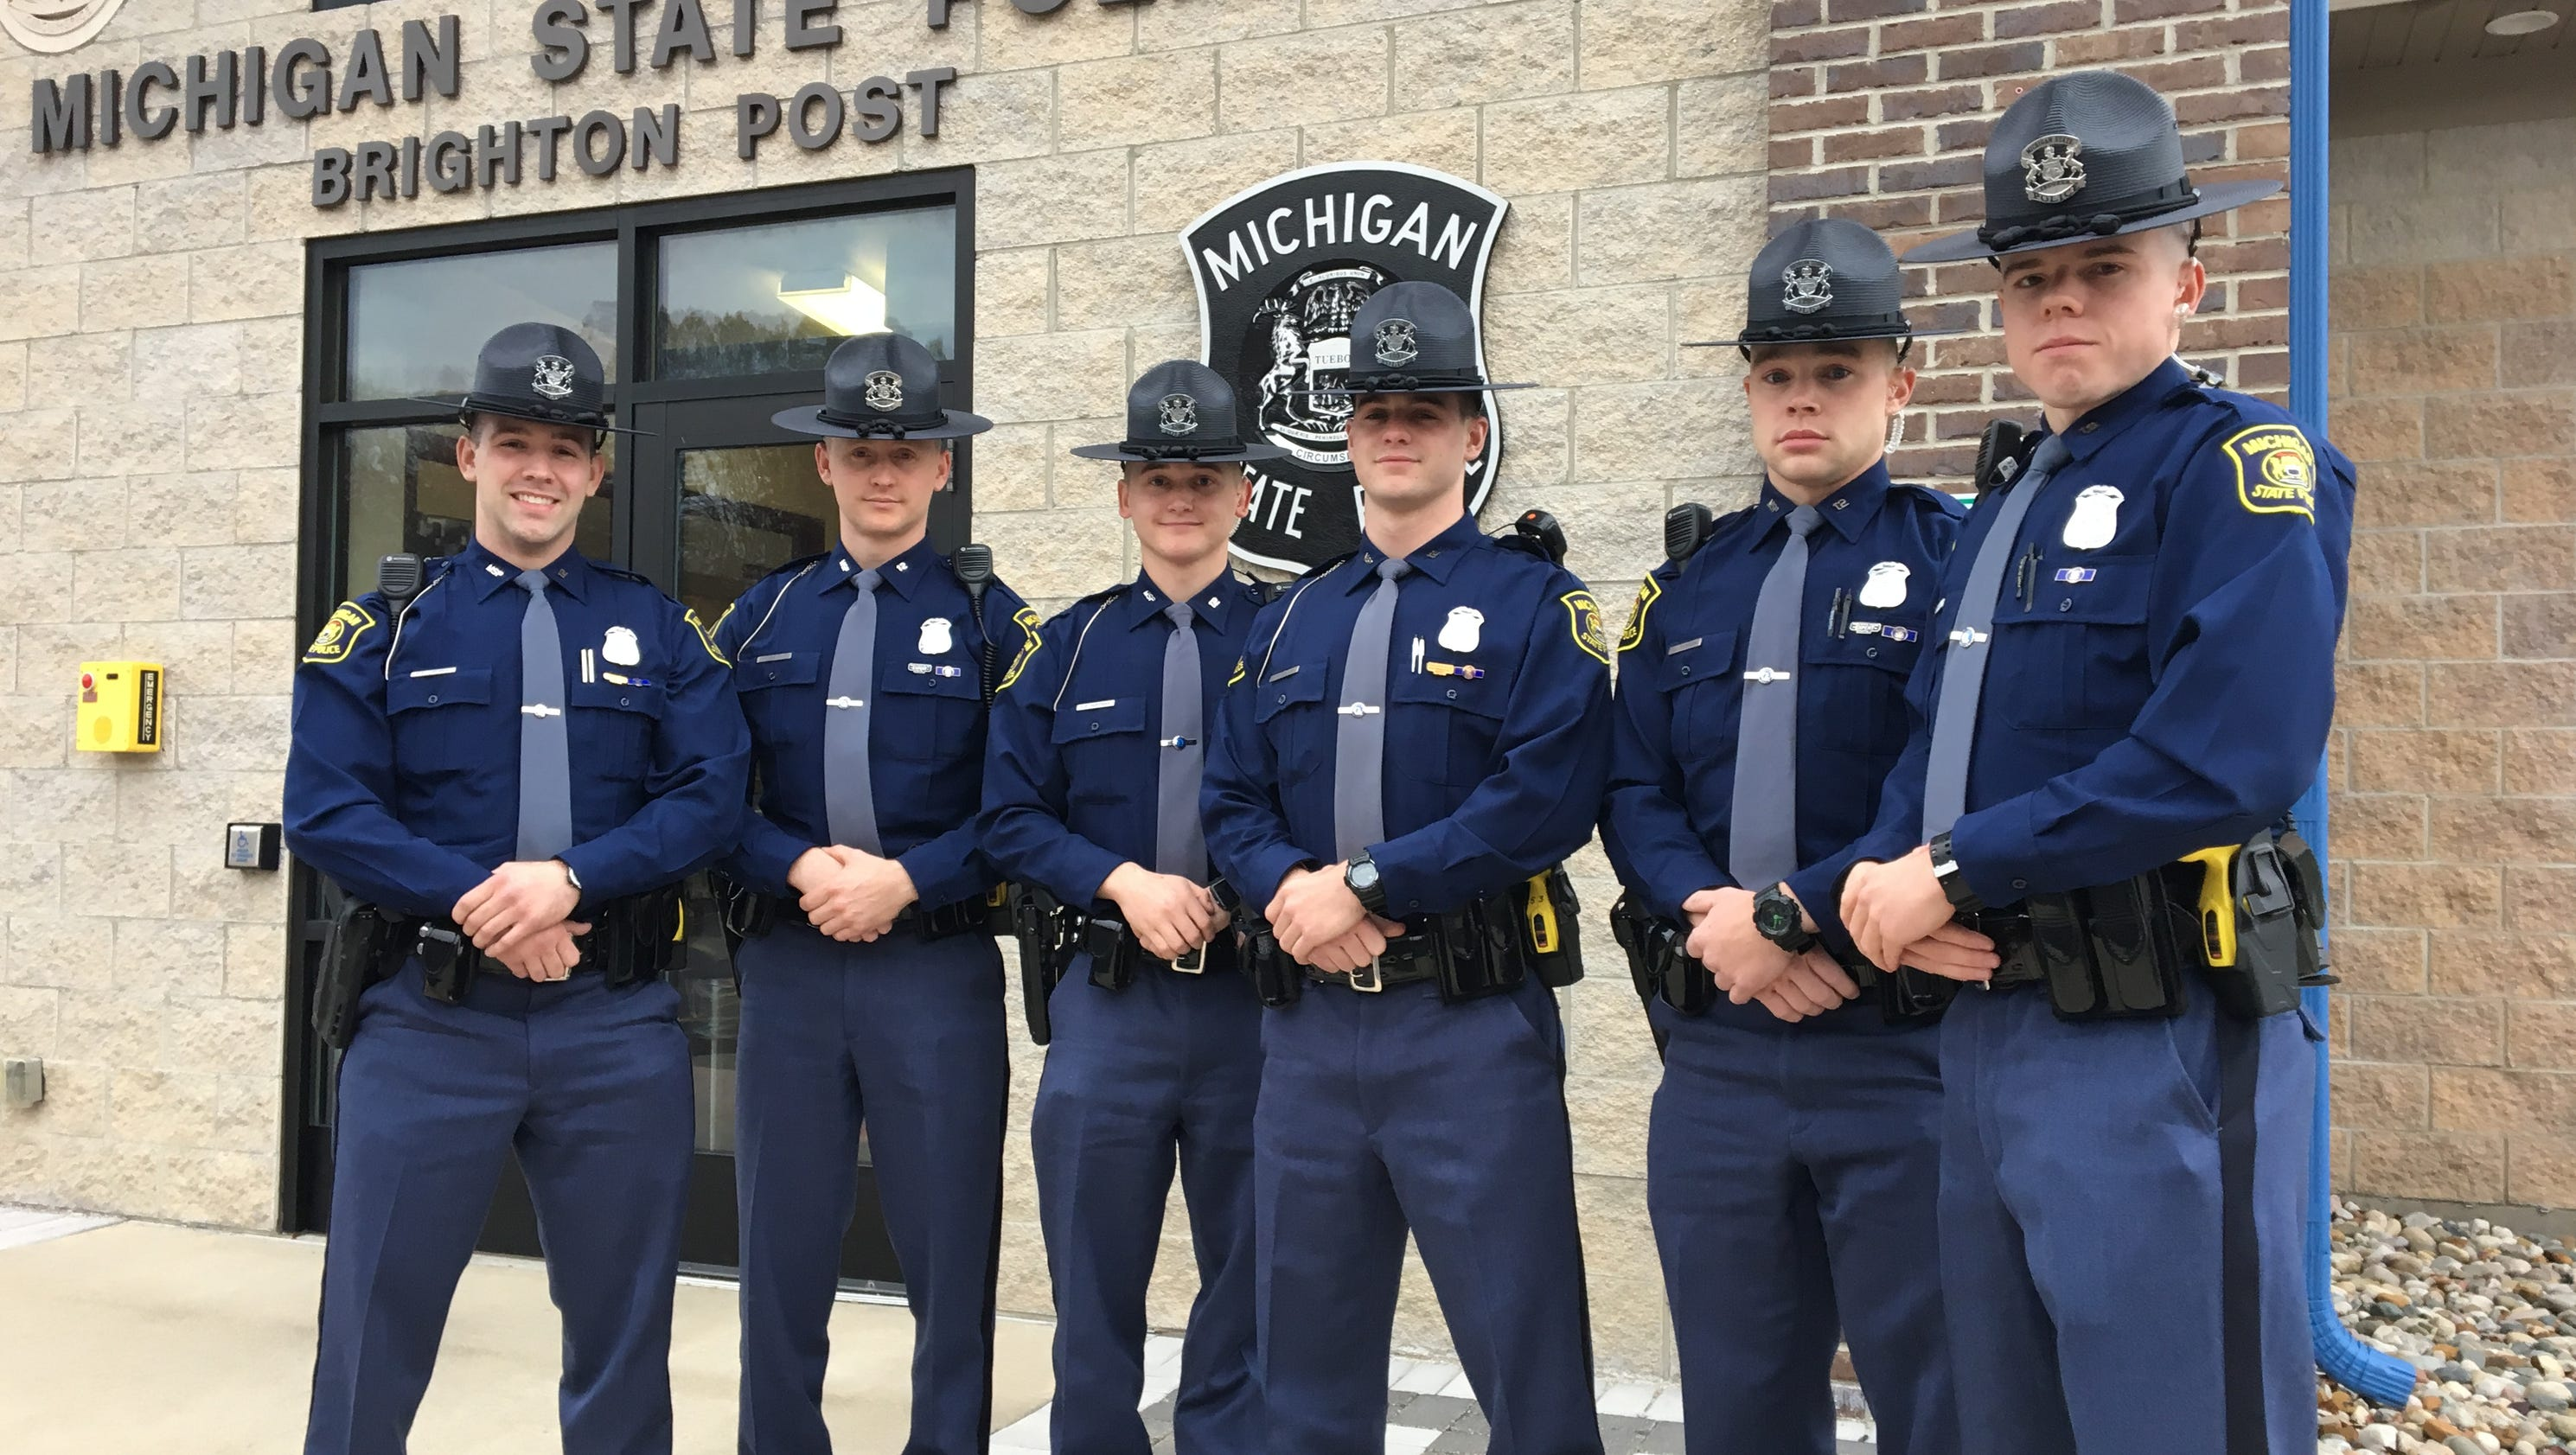 Michigan State Police Academy Related Keywords & Suggestions